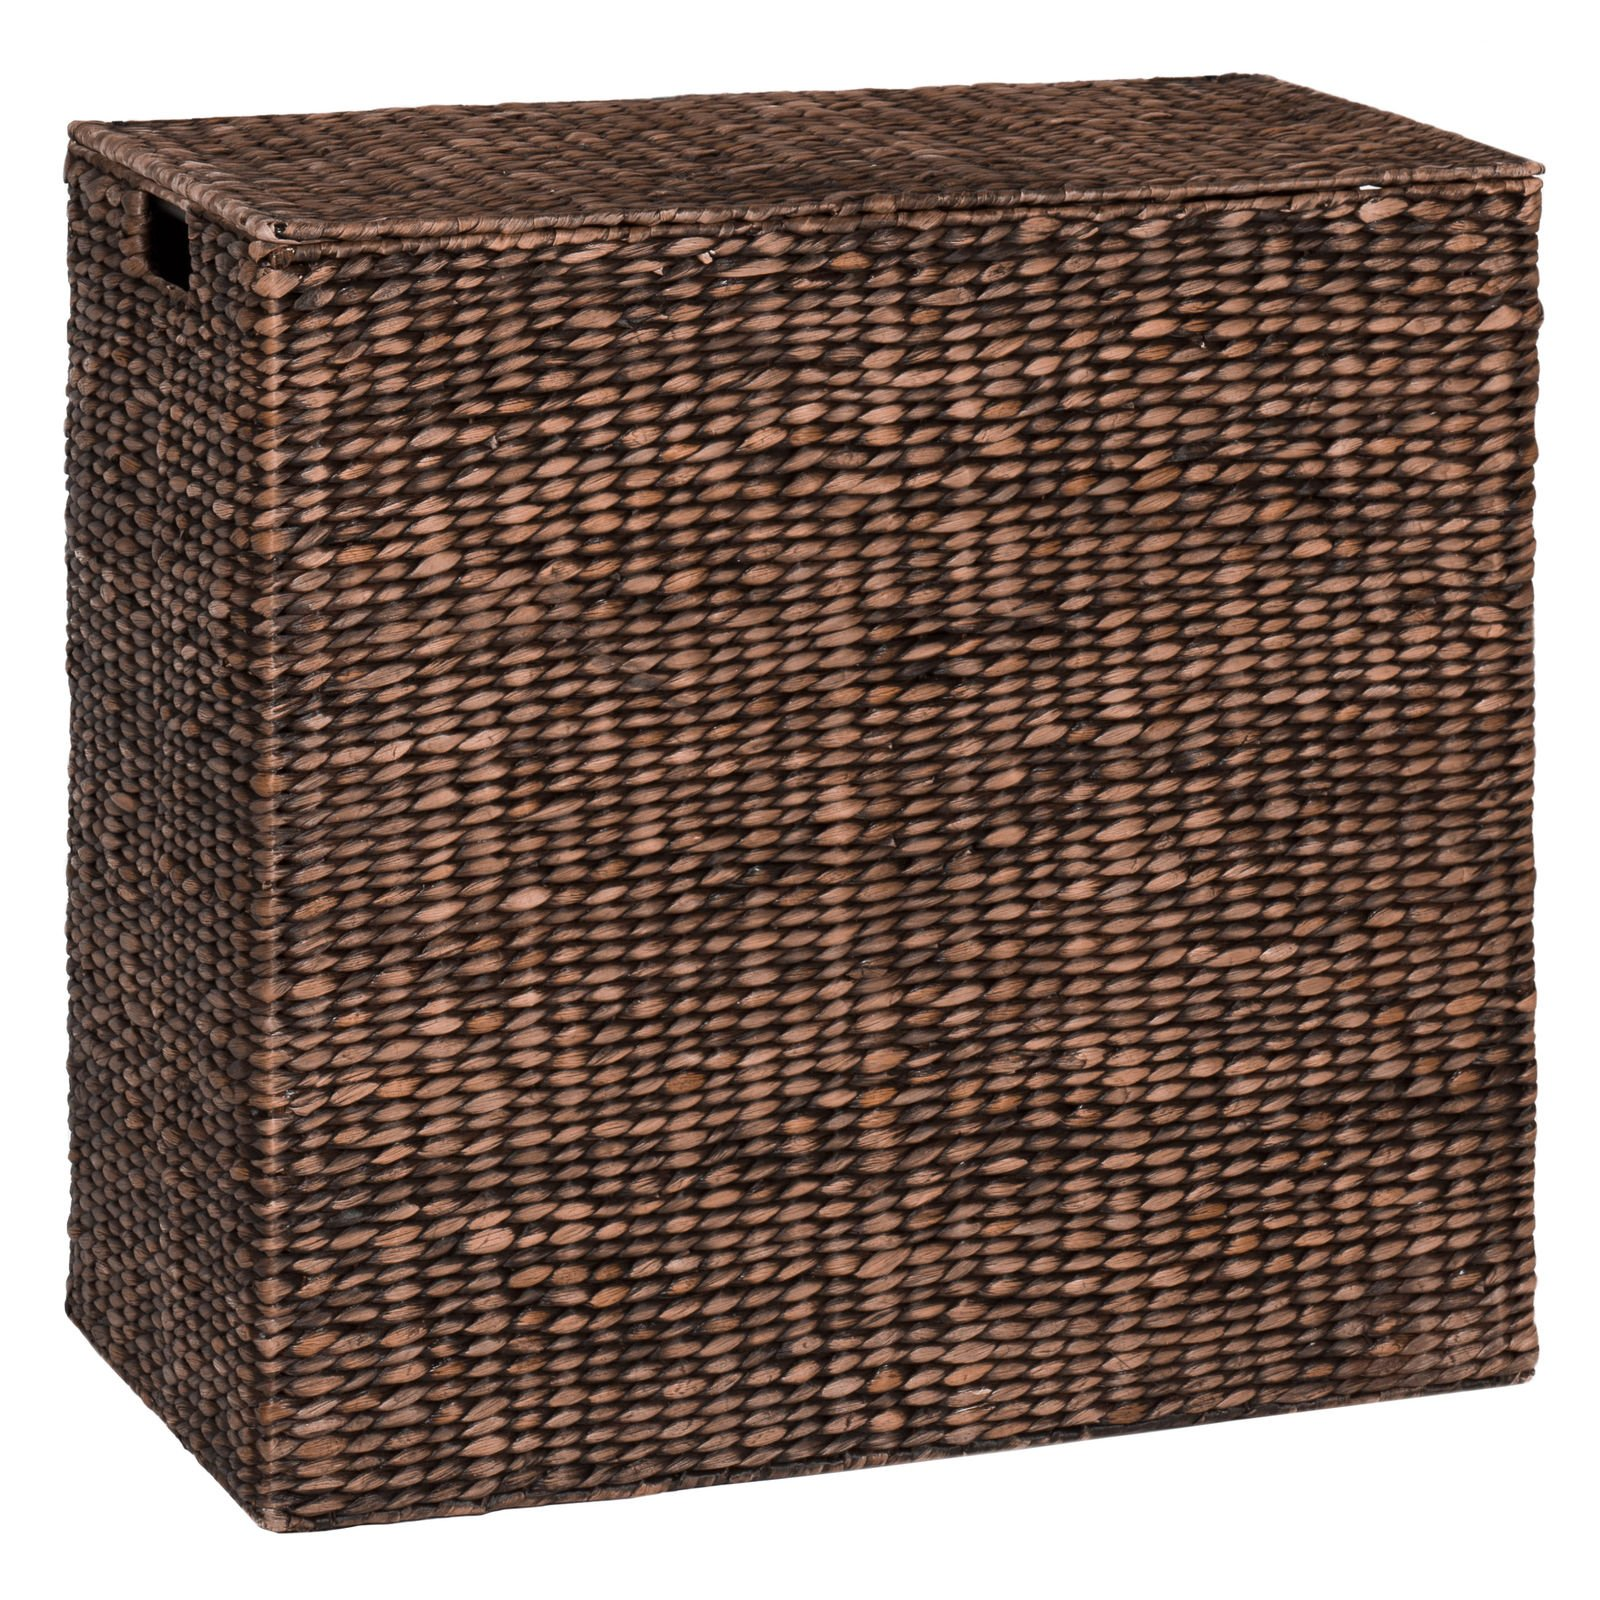 Happybeammy Water Hyacinth Double Laundry Hamper Basket 2 Liner Basket Bags Brushed Espresso